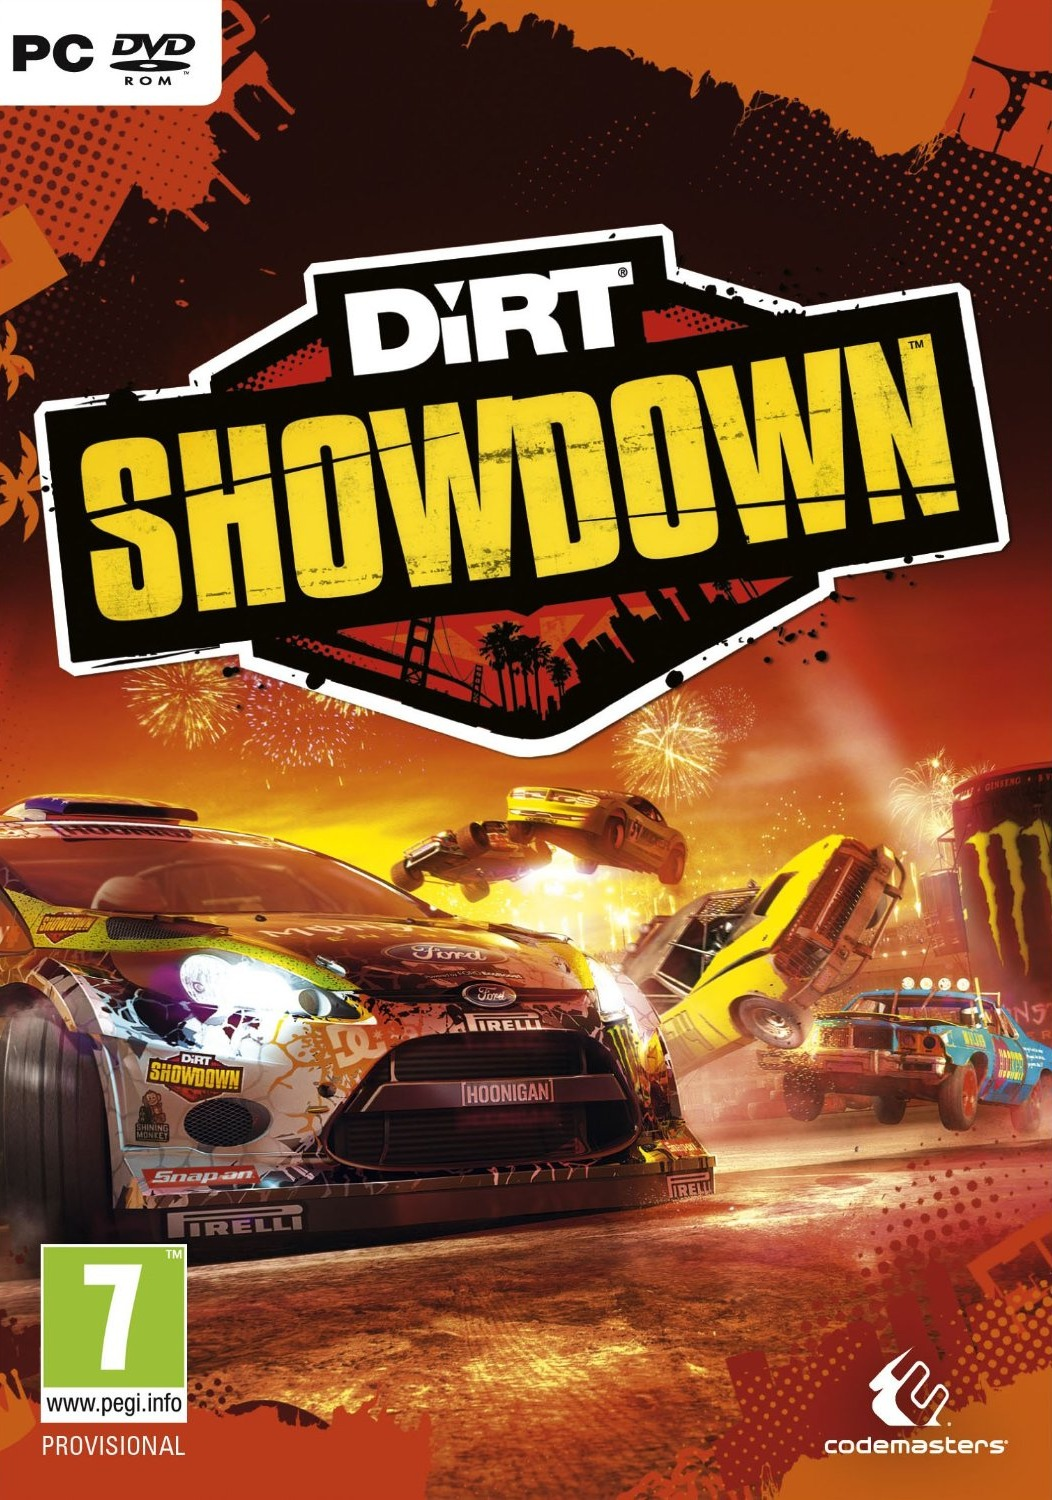 DiRT Showdown (2012/MULTI5/FR/DEMO) (exclue) [MULTI]